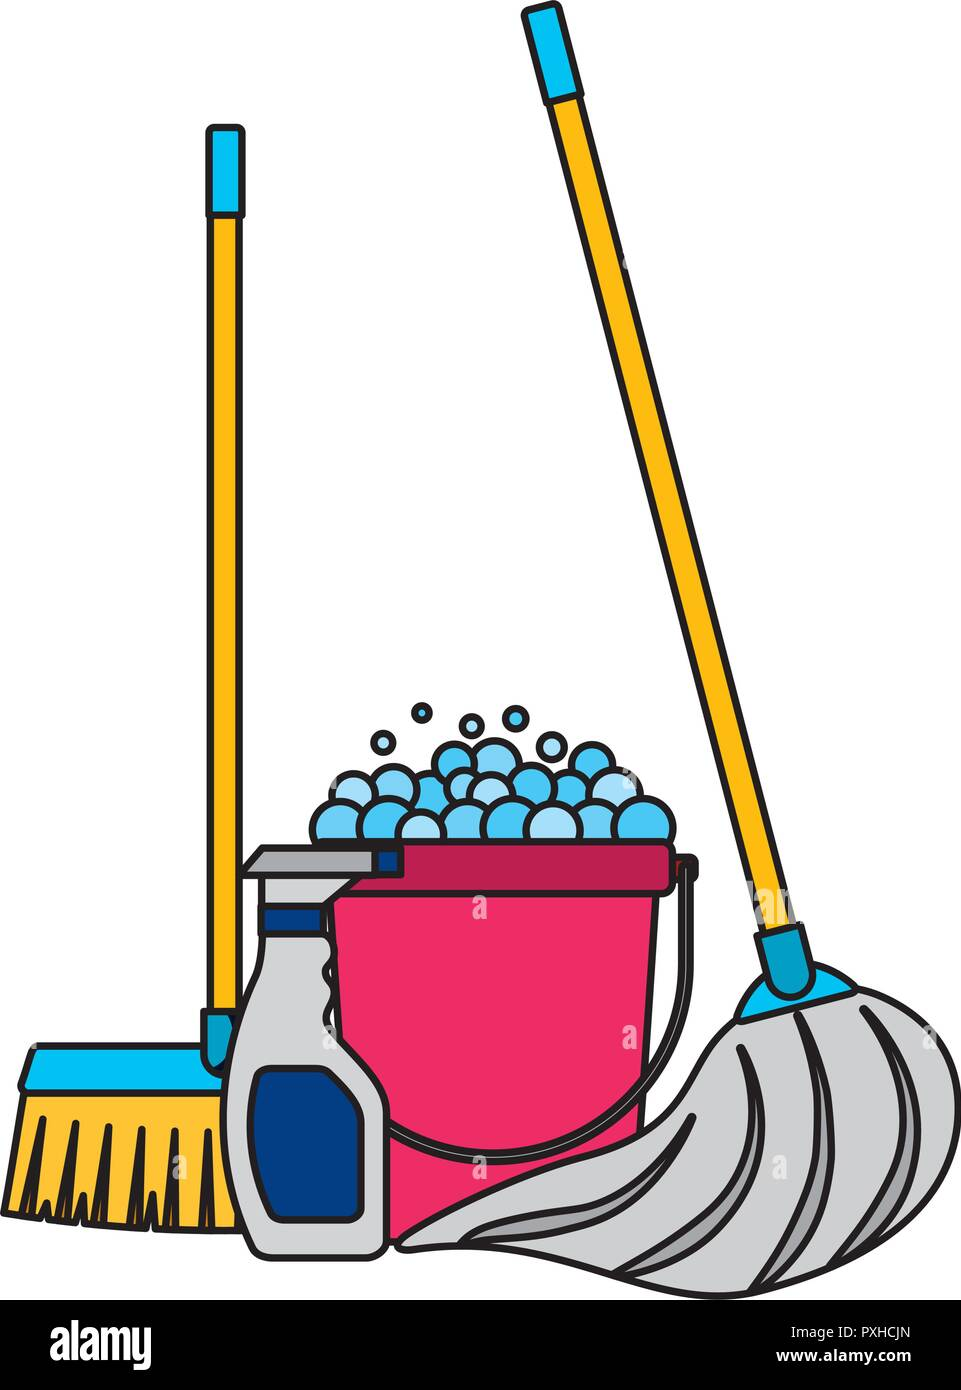 Cleaning Equipment Related Stock Vector Art Amp Illustration